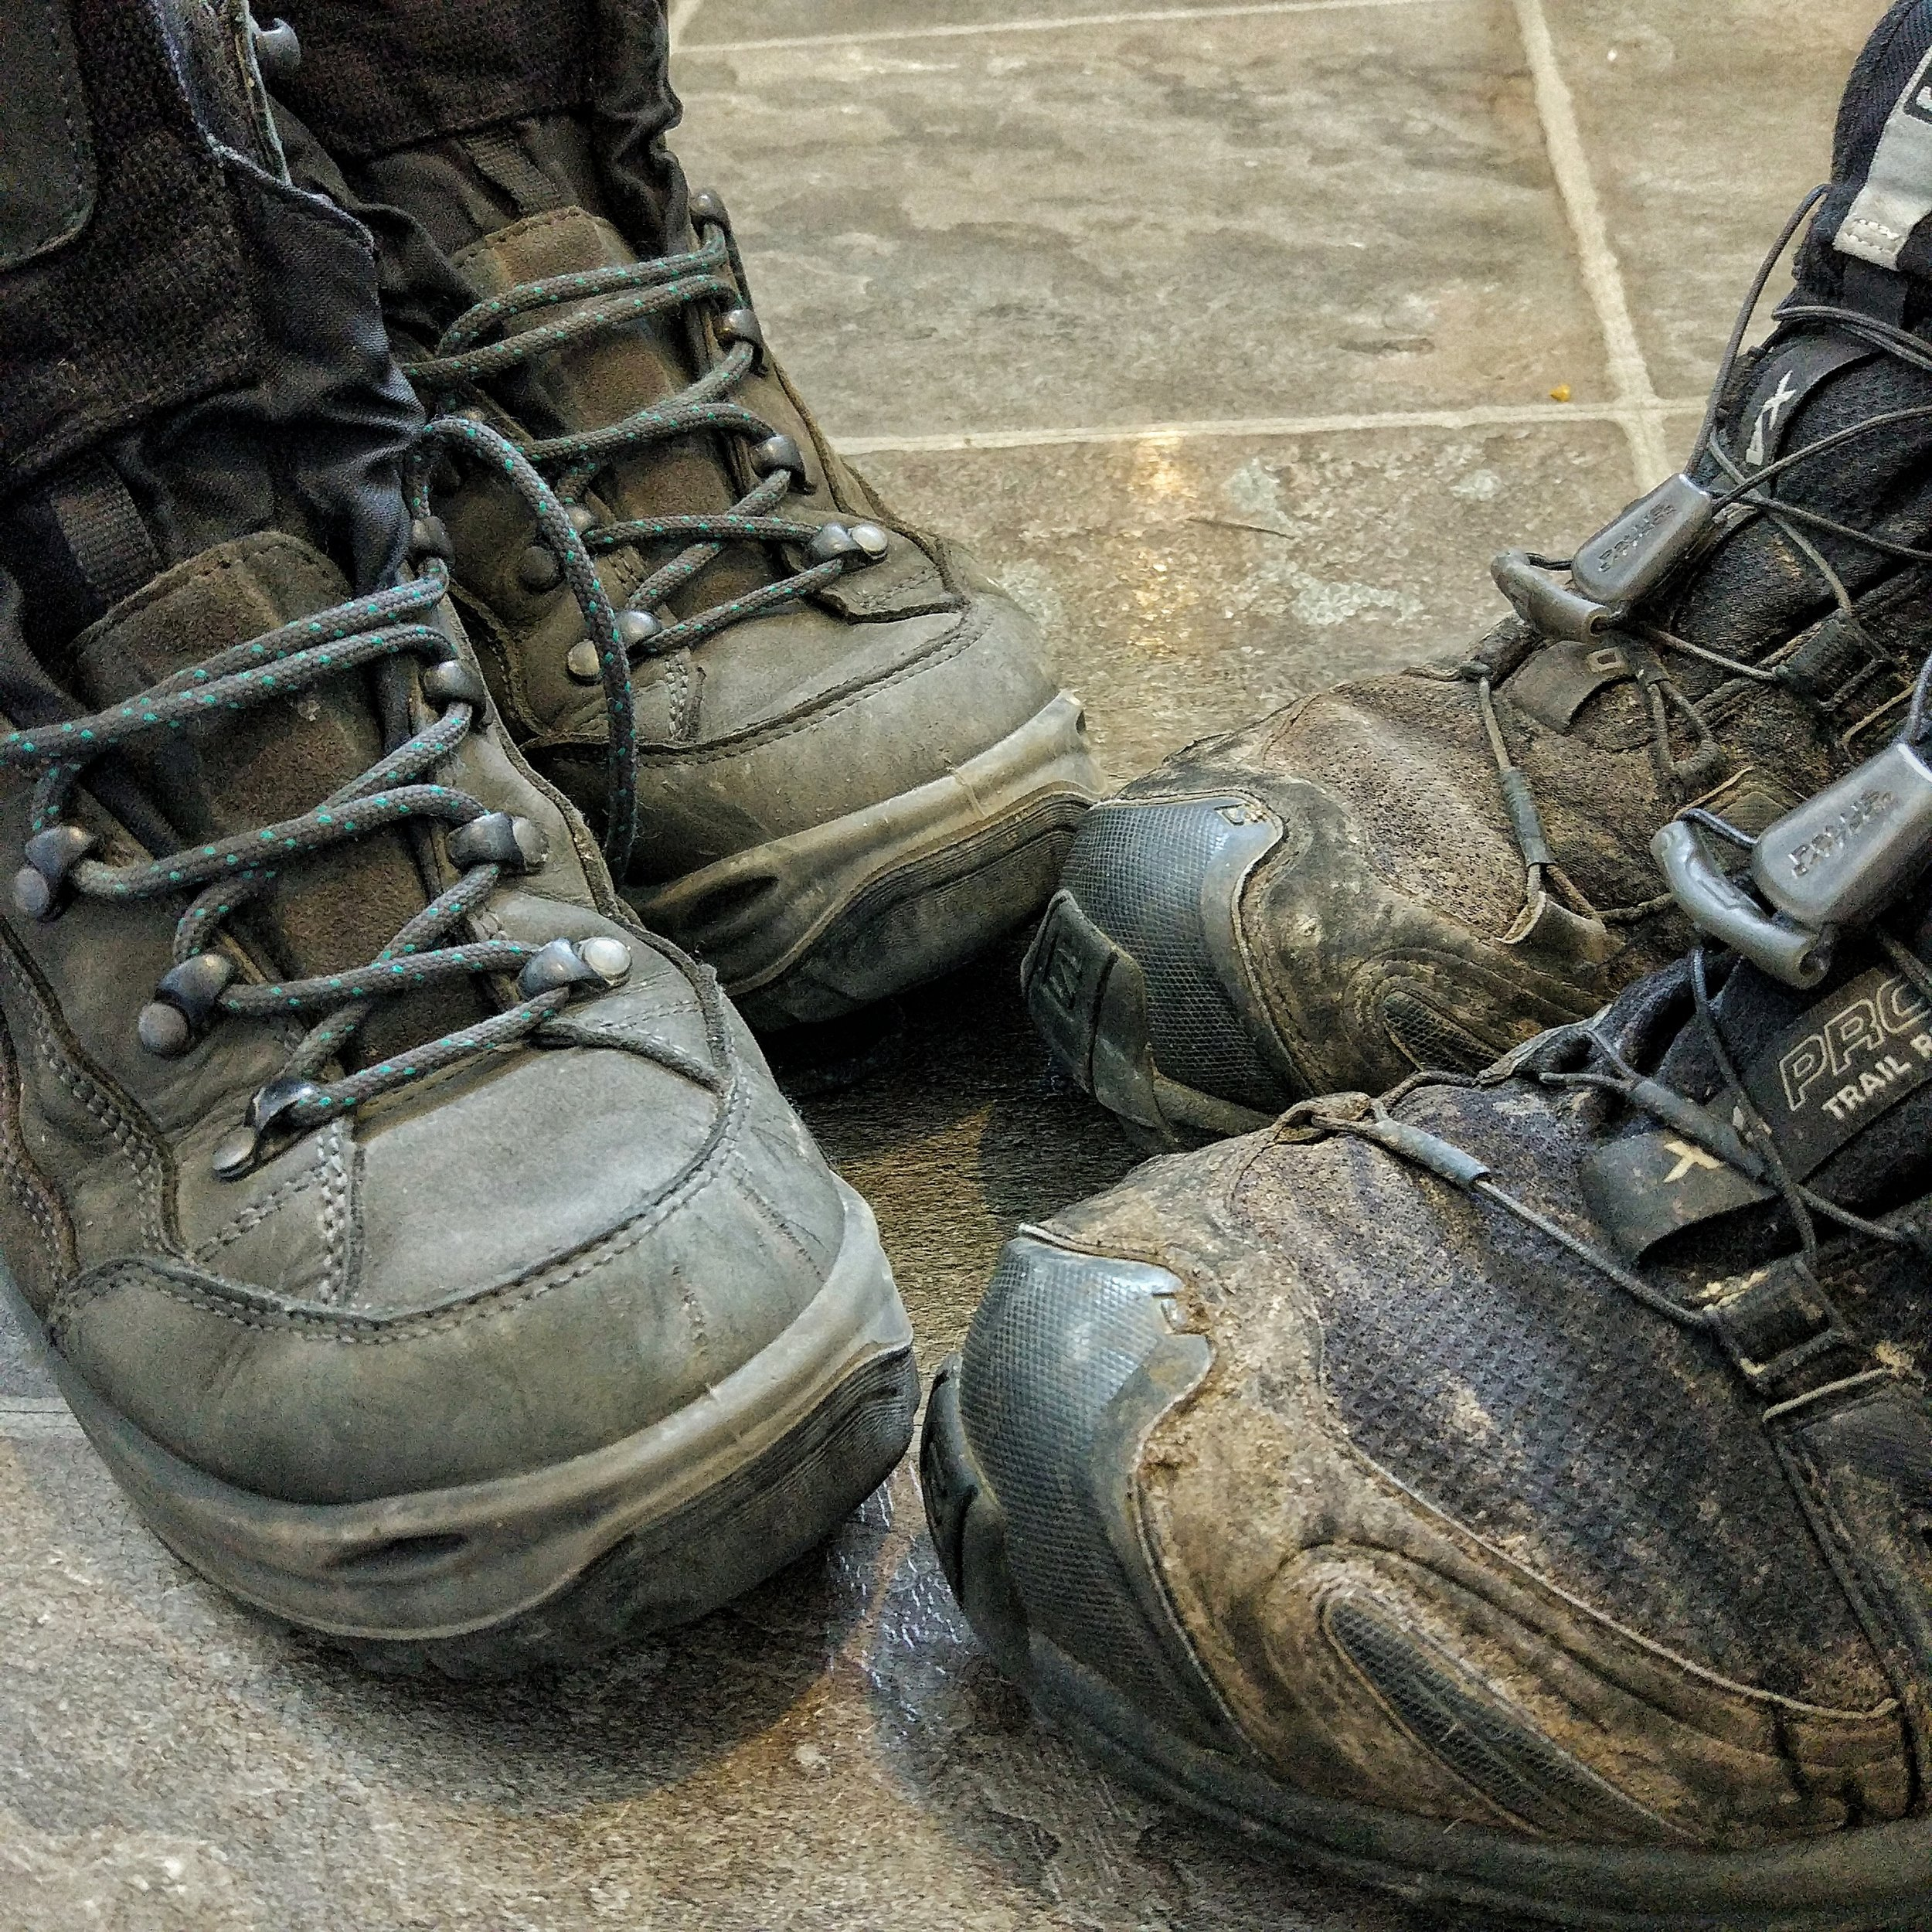 Clean vs dirty. Make sure your shoes are spotless when entering New Zealand